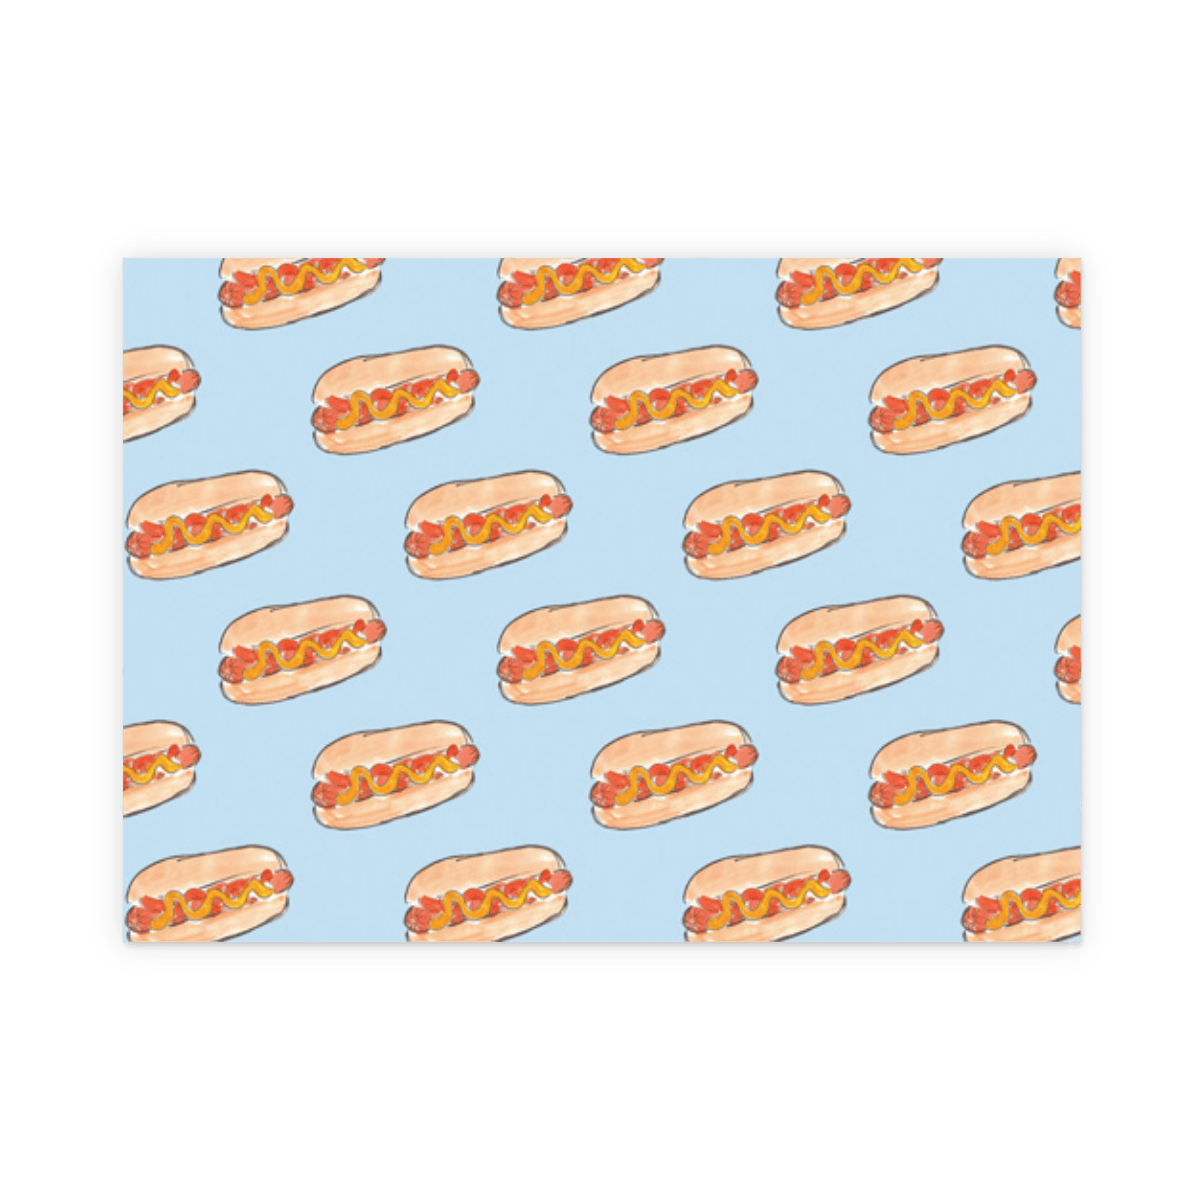 Https%3a%2f%2fwww.papier.com%2fproduct image%2f47336%2f42%2fhotdogs 11610 back 1537960432.png?ixlib=rb 1.1